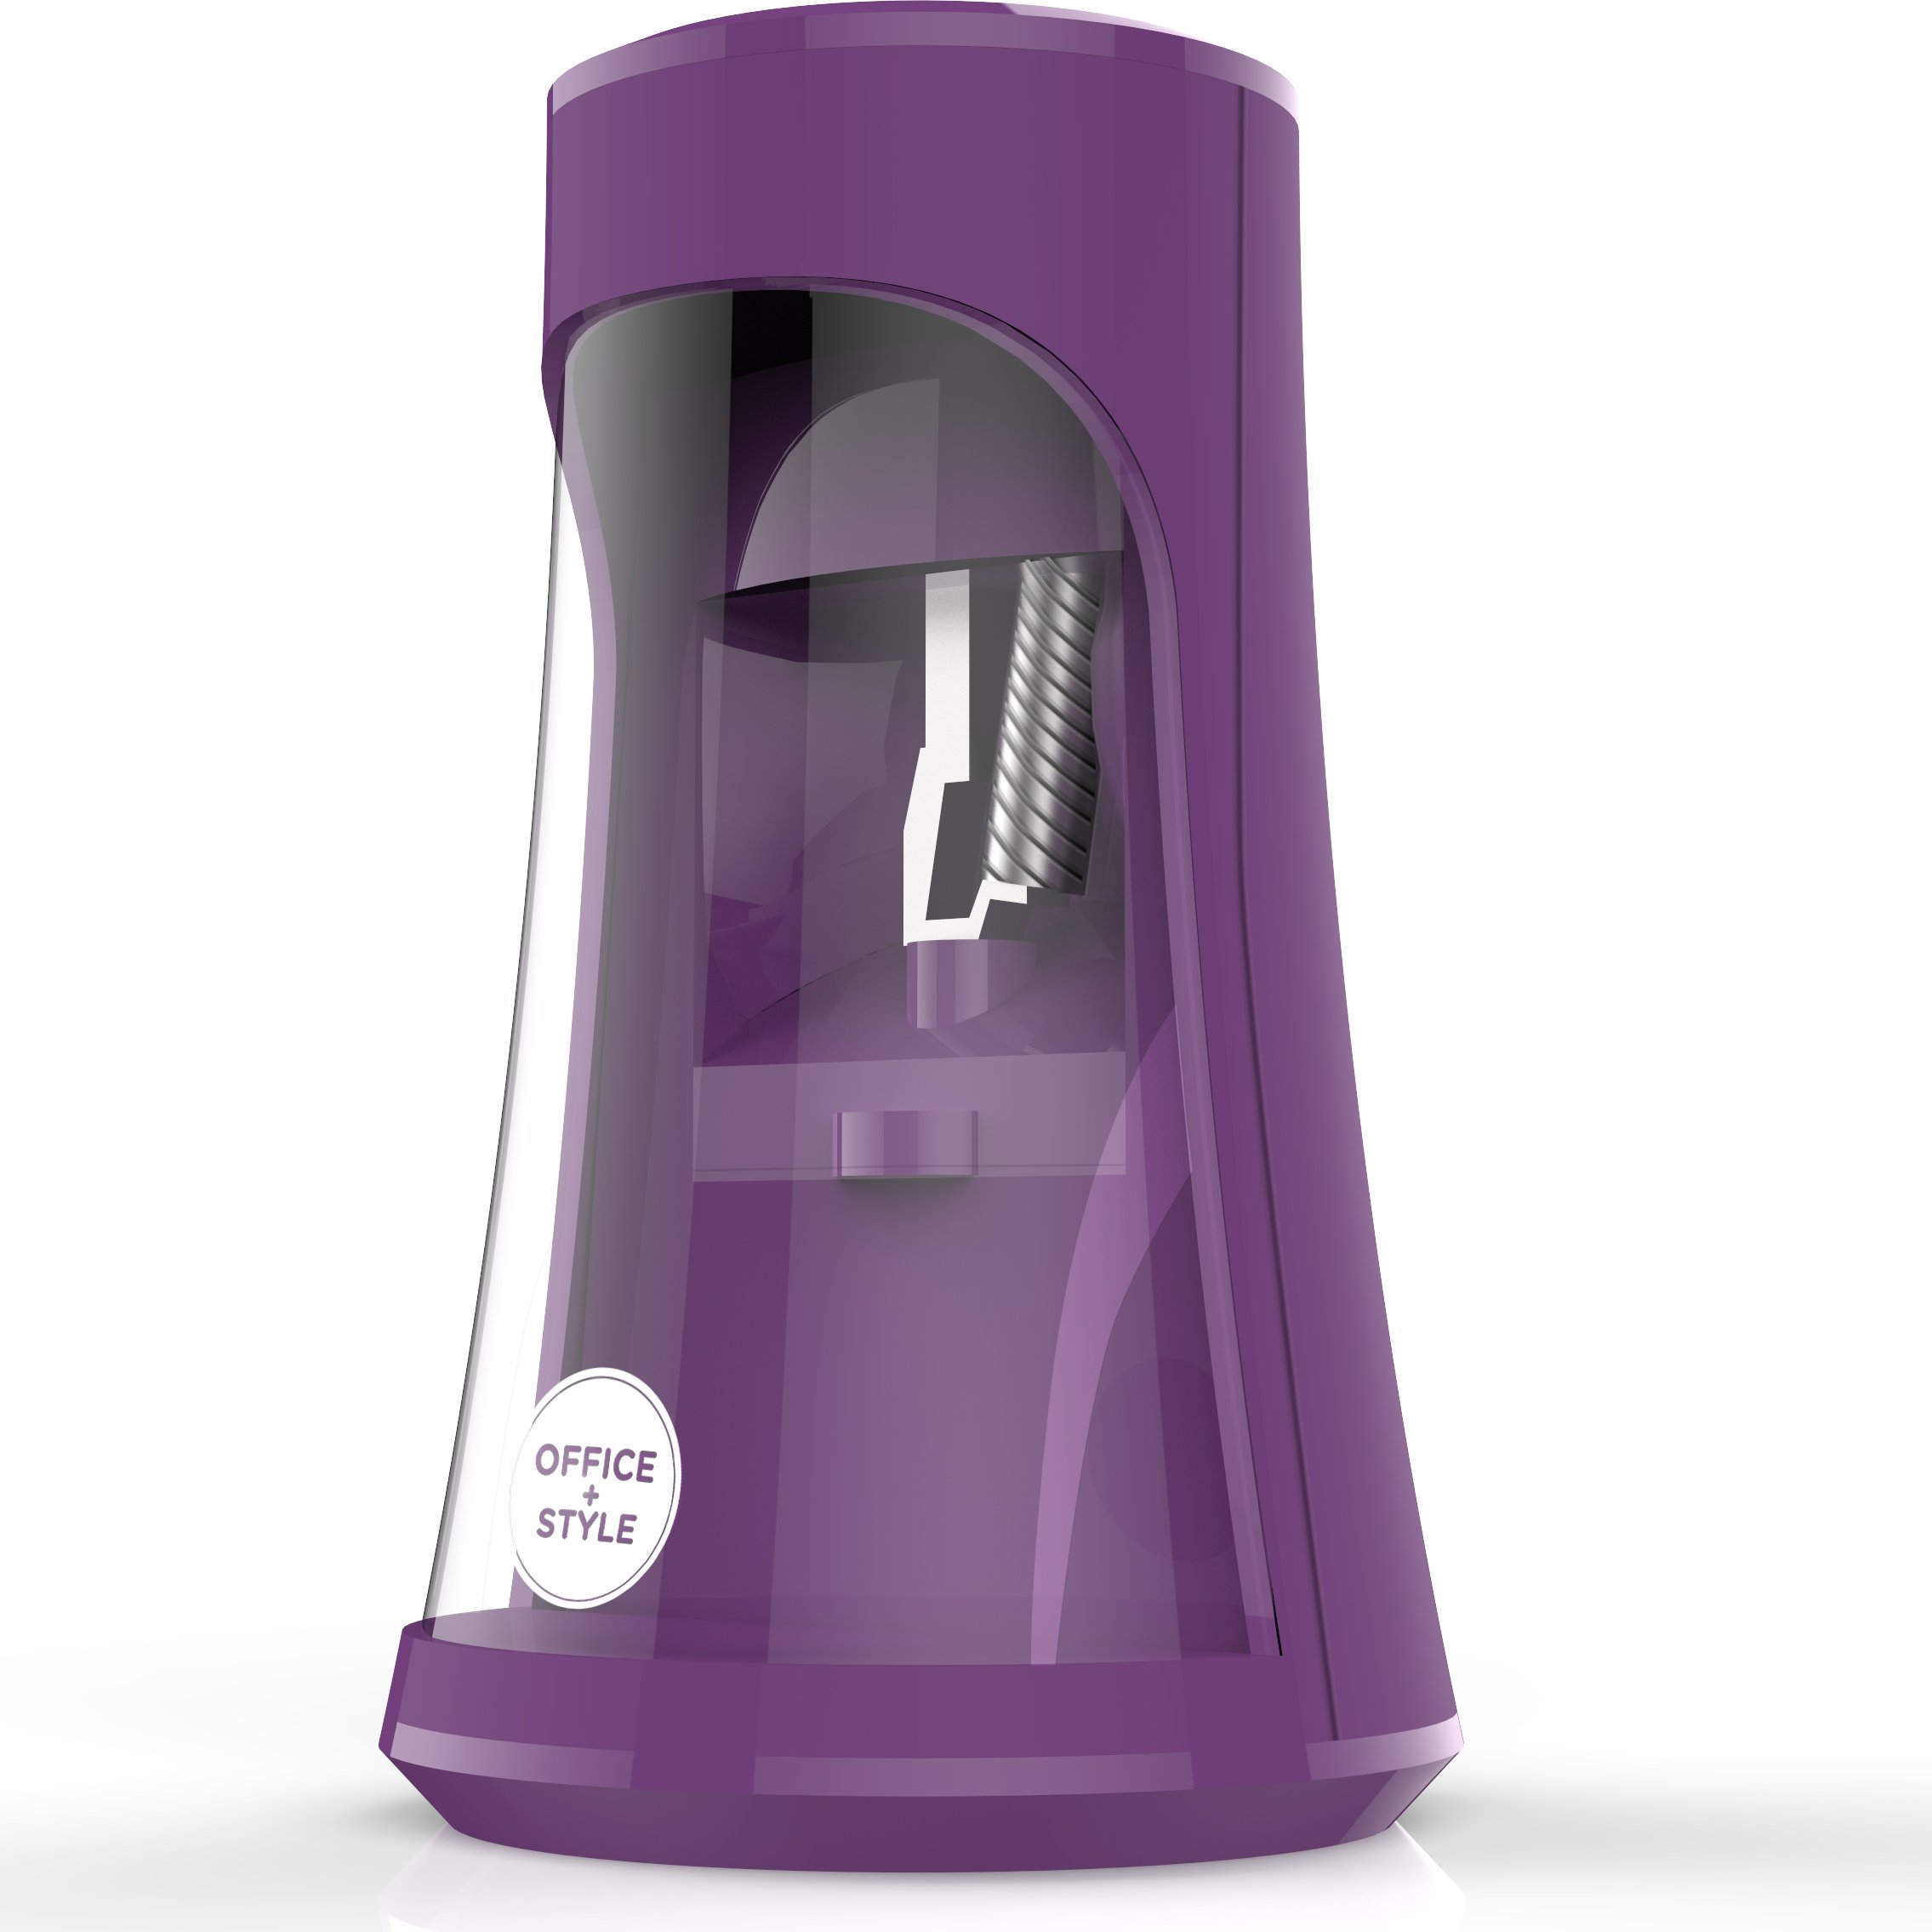 Fully Automatic Electronic Pencil Sharpener With Auto Stop Safety Feature For Home, Office or Classroom, - Purple- By Office + Style